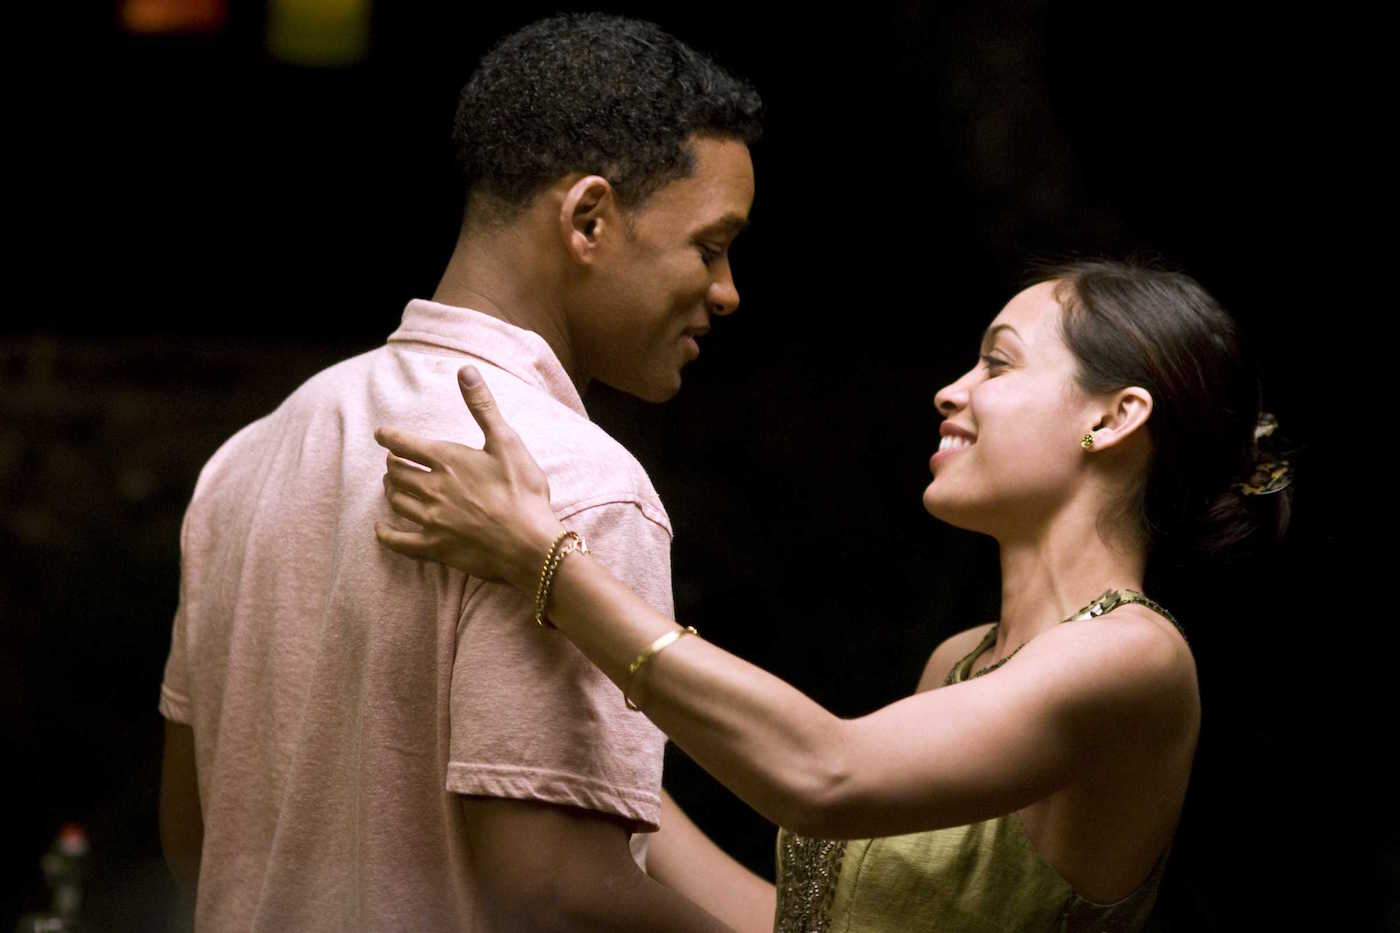 Will Smith and Rosario Dawson star in Columbia Pictures' drama SEVEN POUNDS.